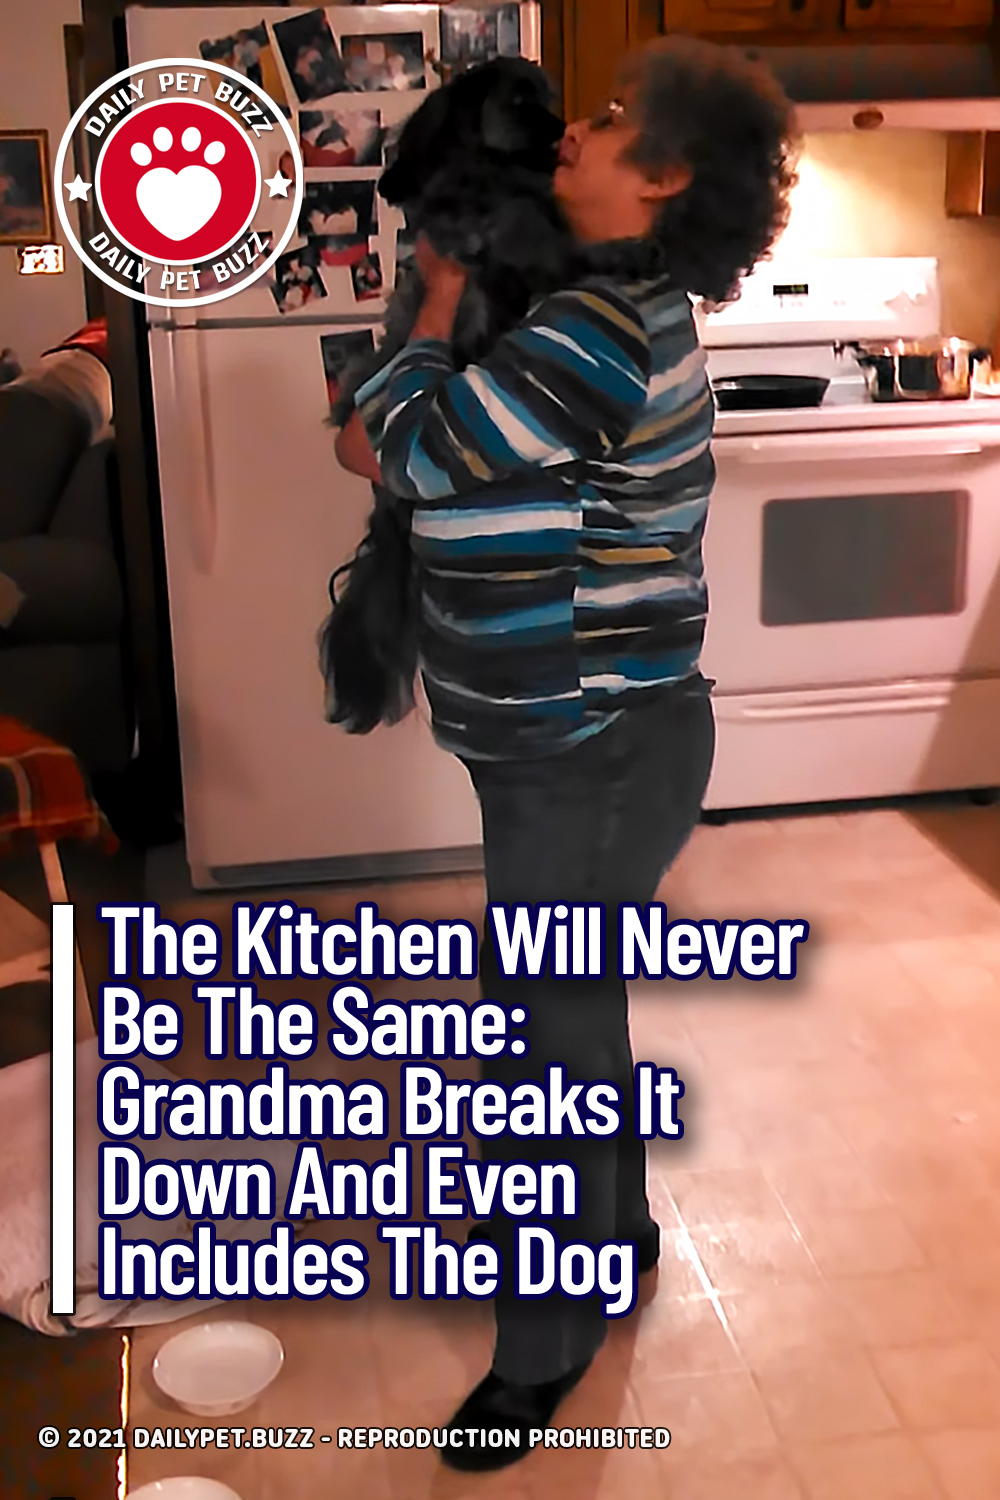 The Kitchen Will Never Be The Same: Grandma Breaks It Down And Even Includes The Dog